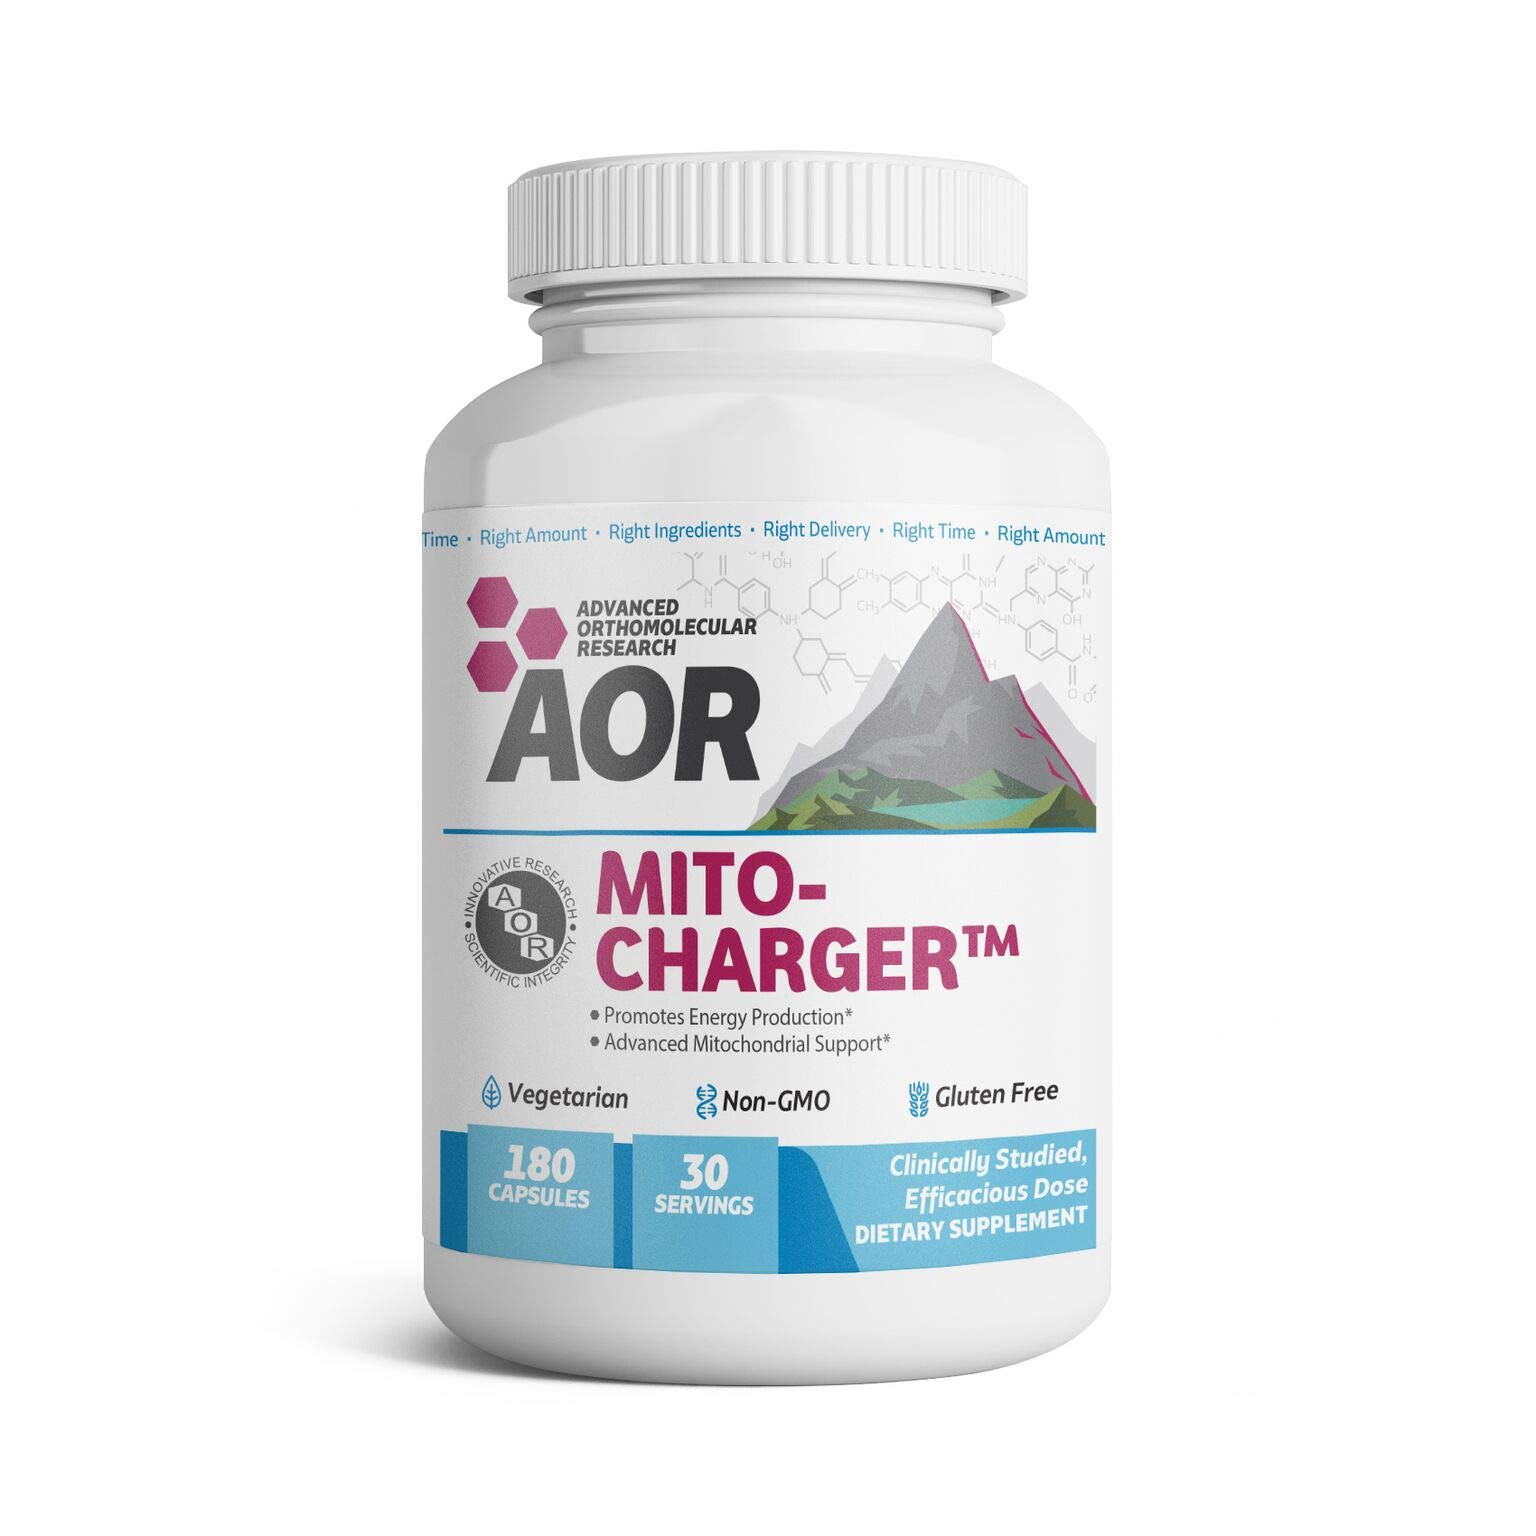 AOR - Mito-Charger, Natural Supplement to Support Healthy Mitochondria, with R-Lipoic Acid, Vegetarian, 180 capsules (30 servings)